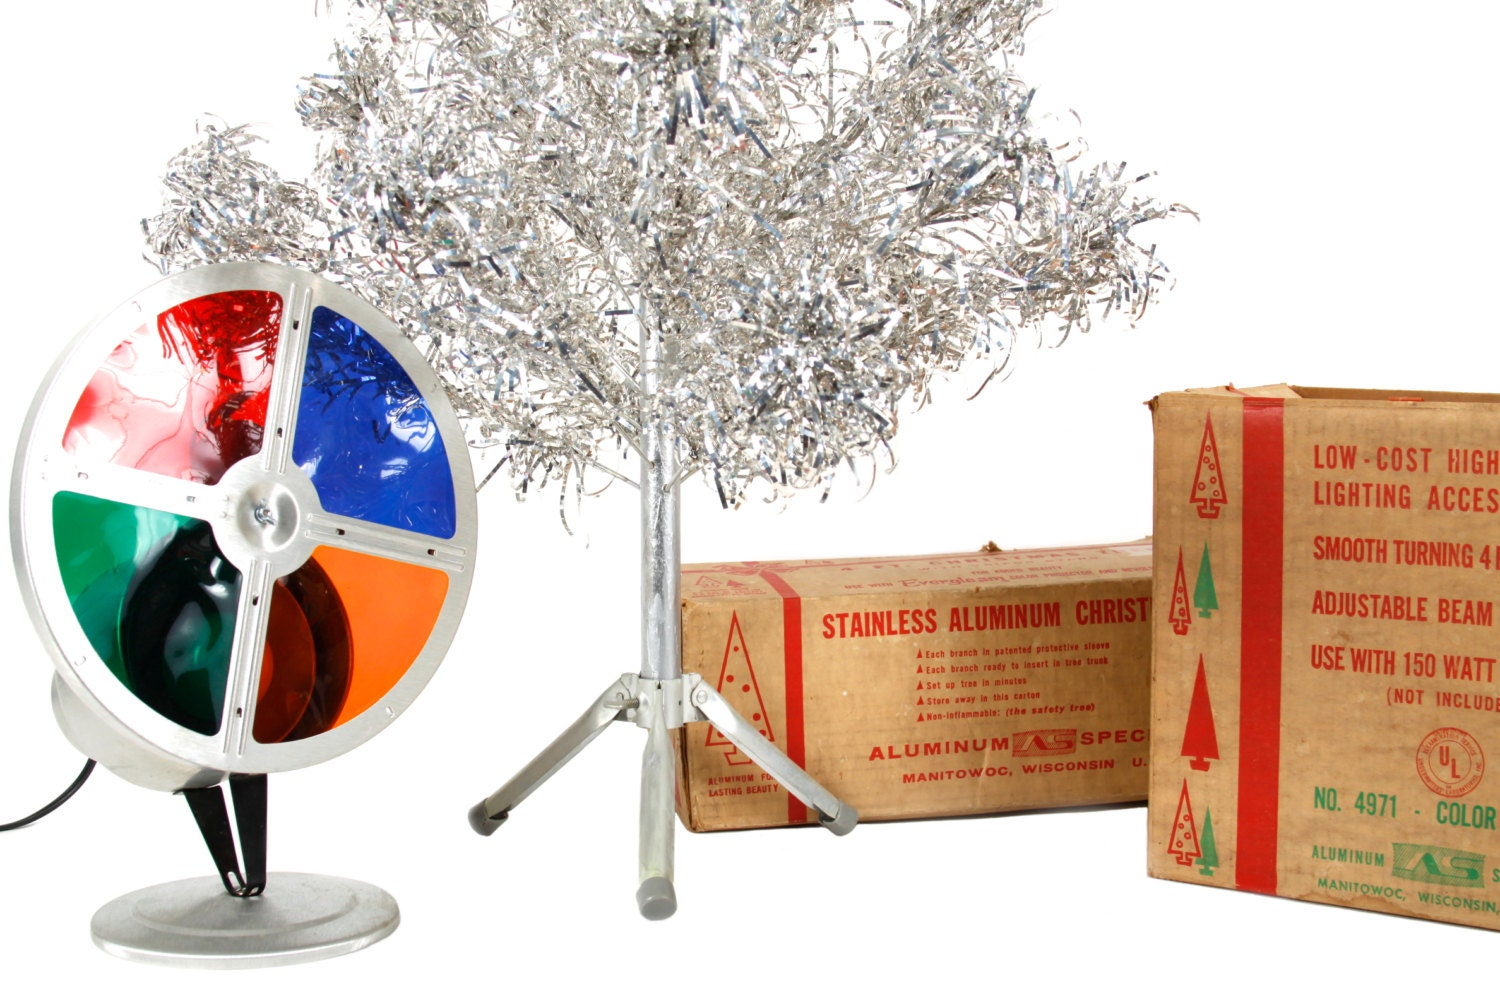 4 Ft. Aluminum Tree With Color Wheel Vintage Christmas